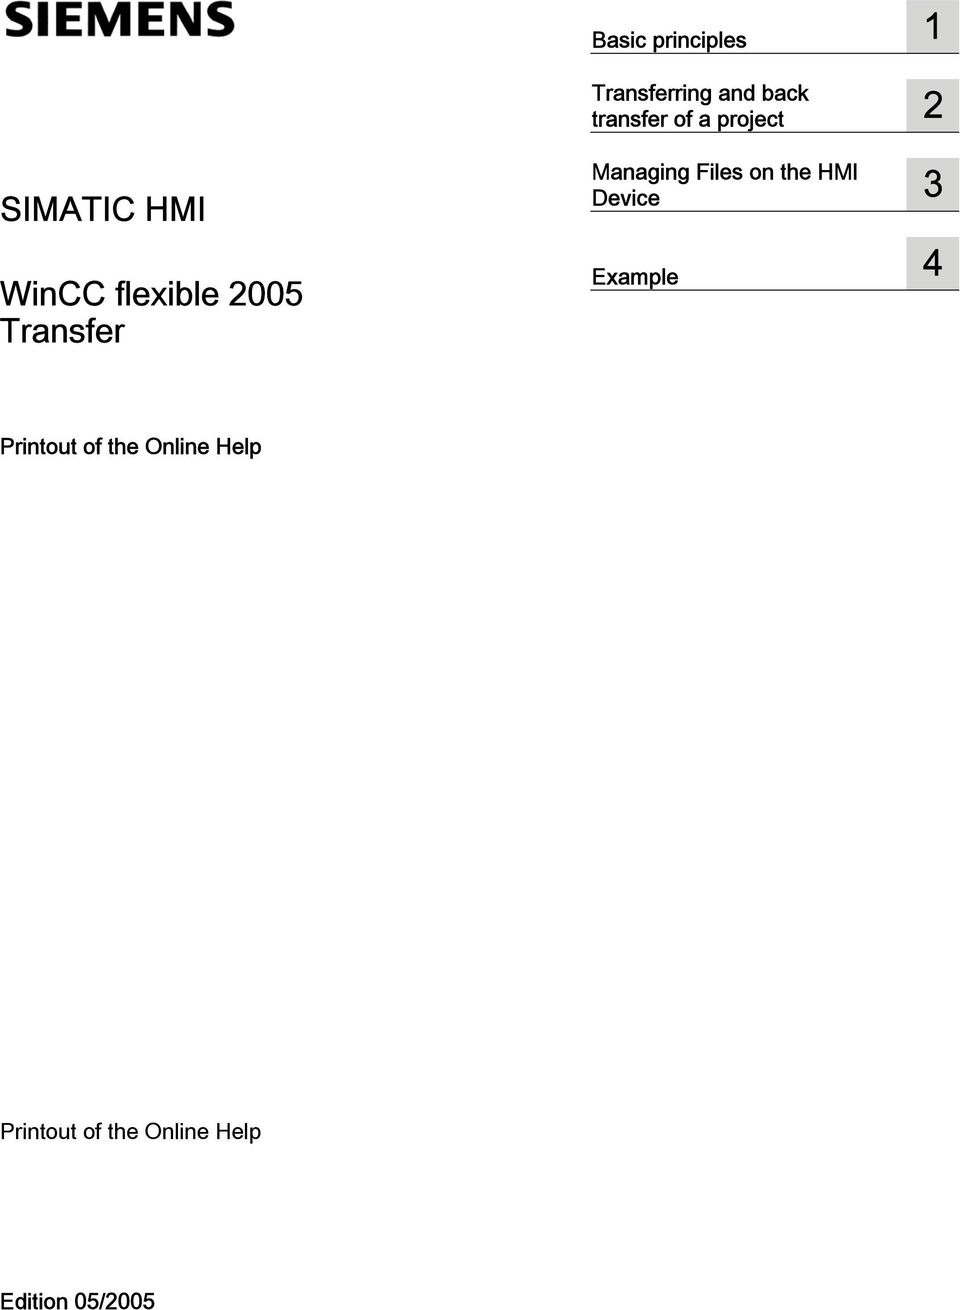 2 Managing Files on the HMI Device 3 Example 4 Printout of